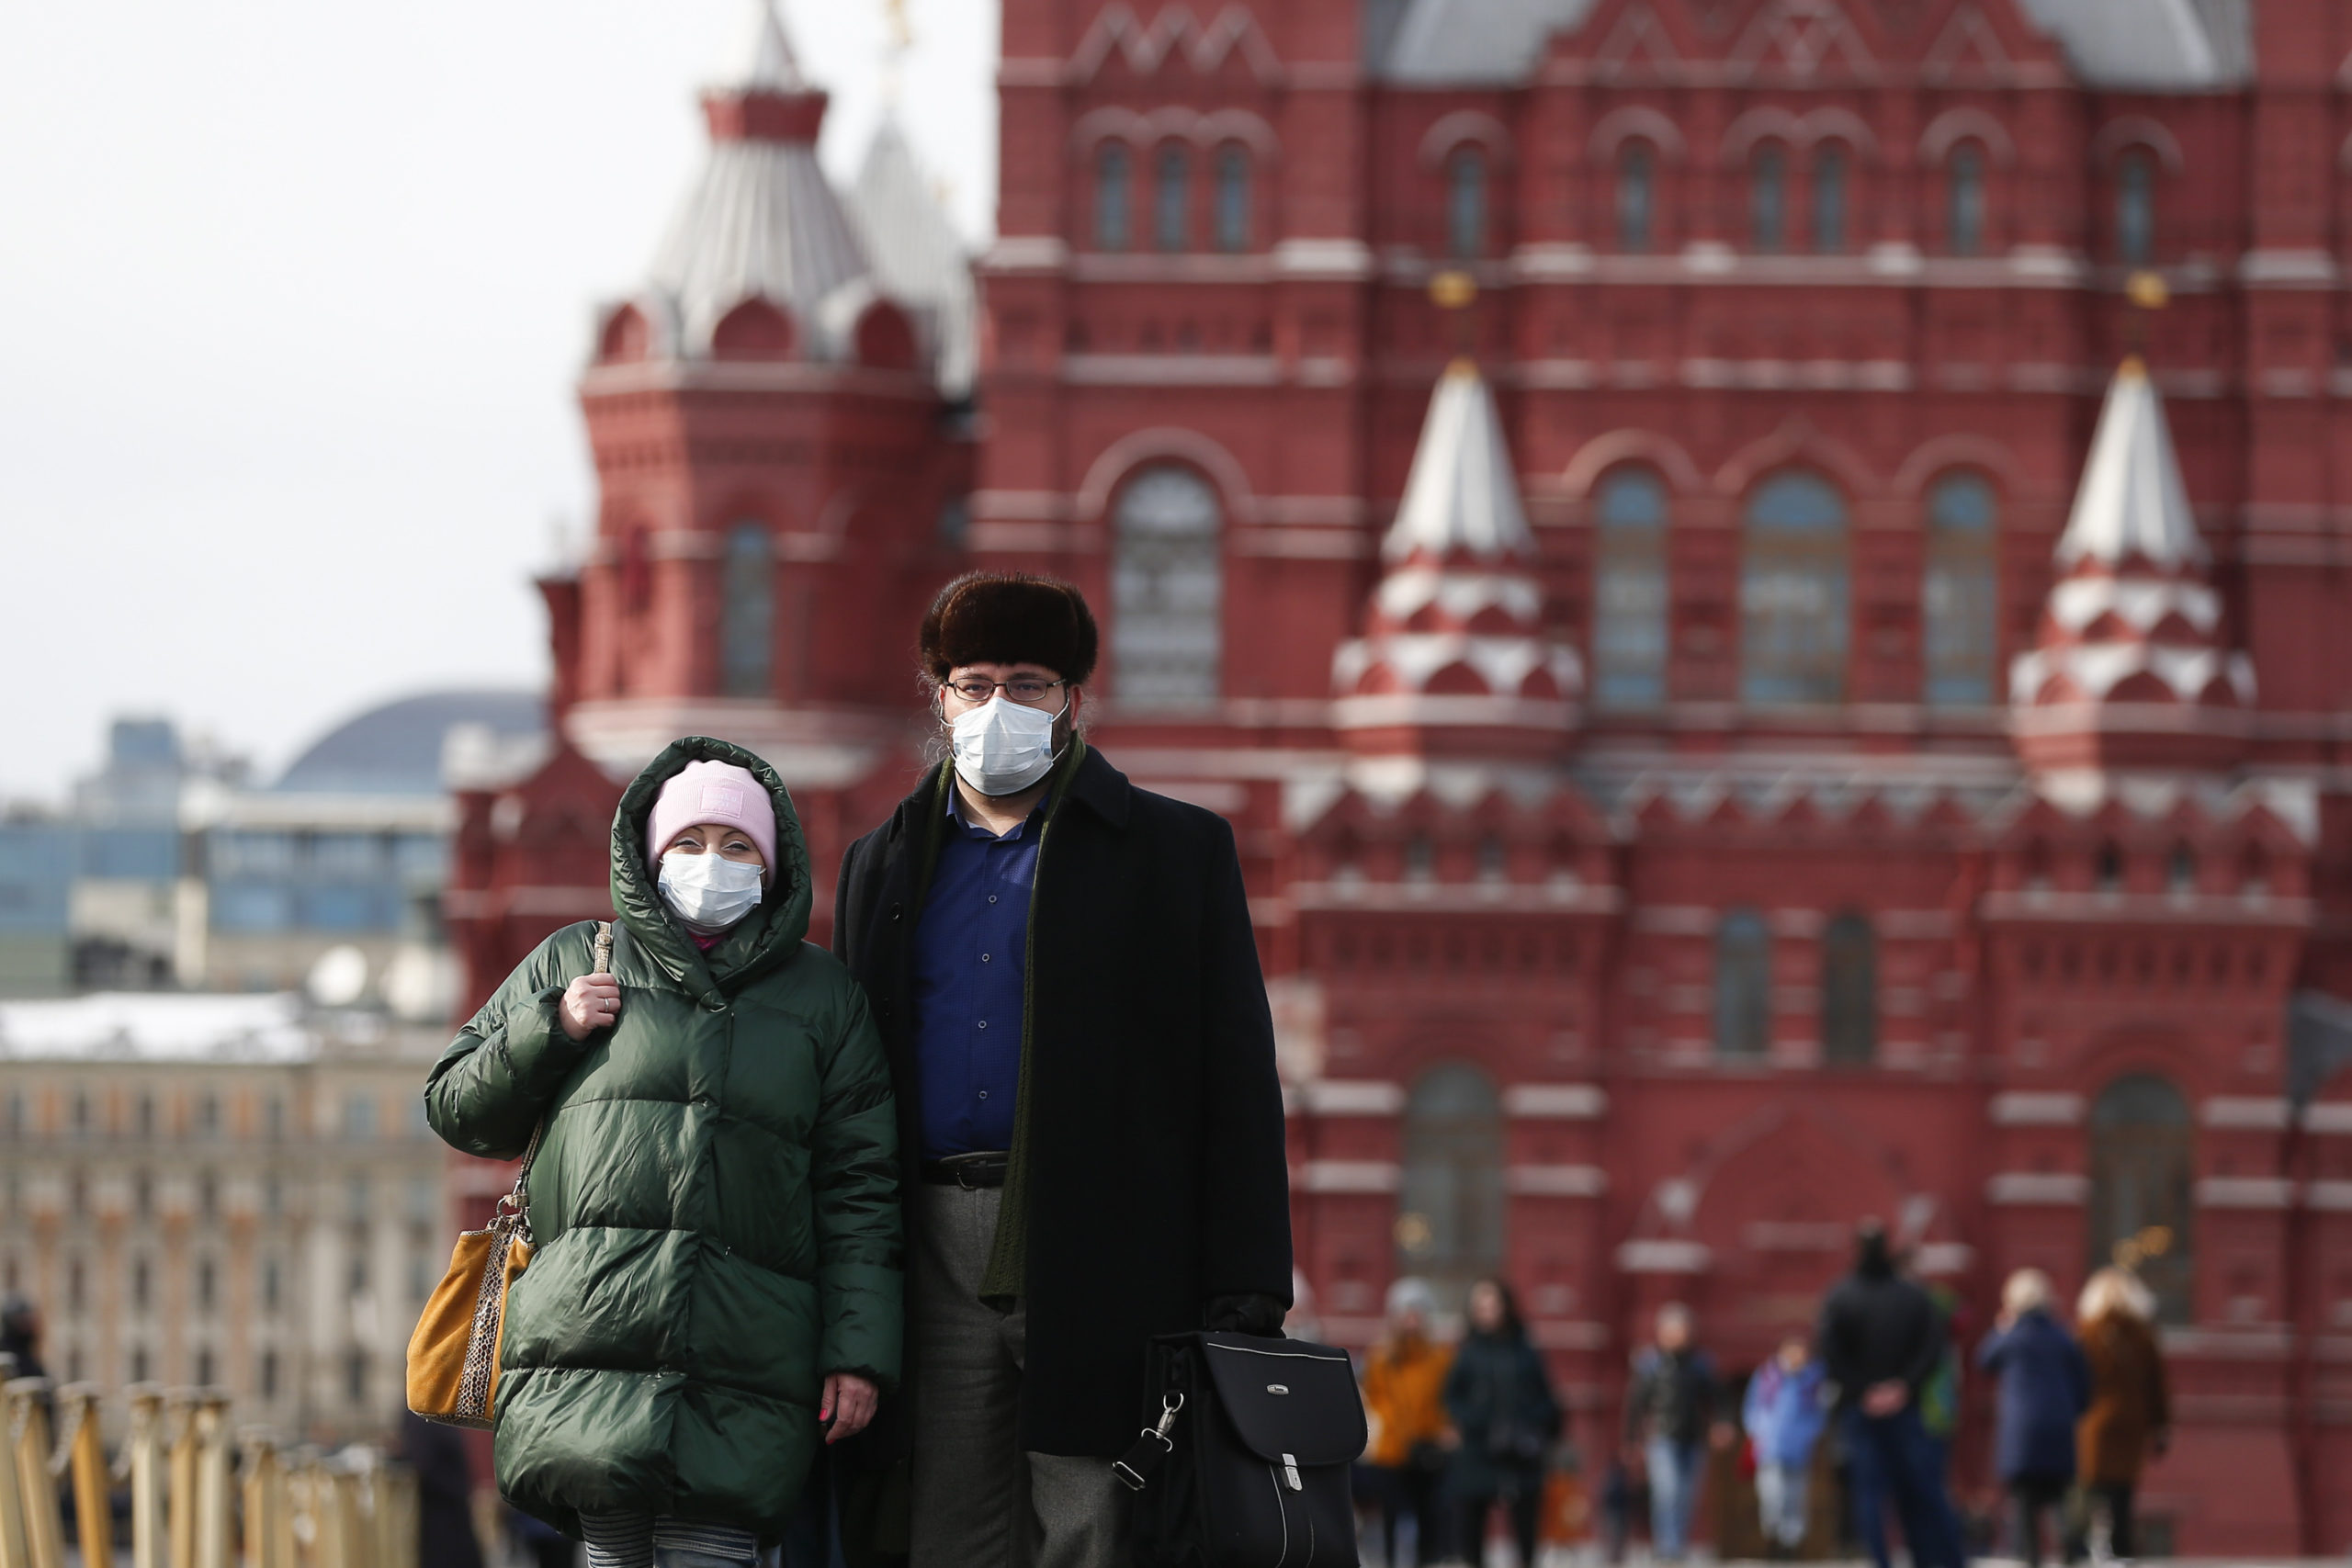 Tourists in Russia during COVID-19 outbreak